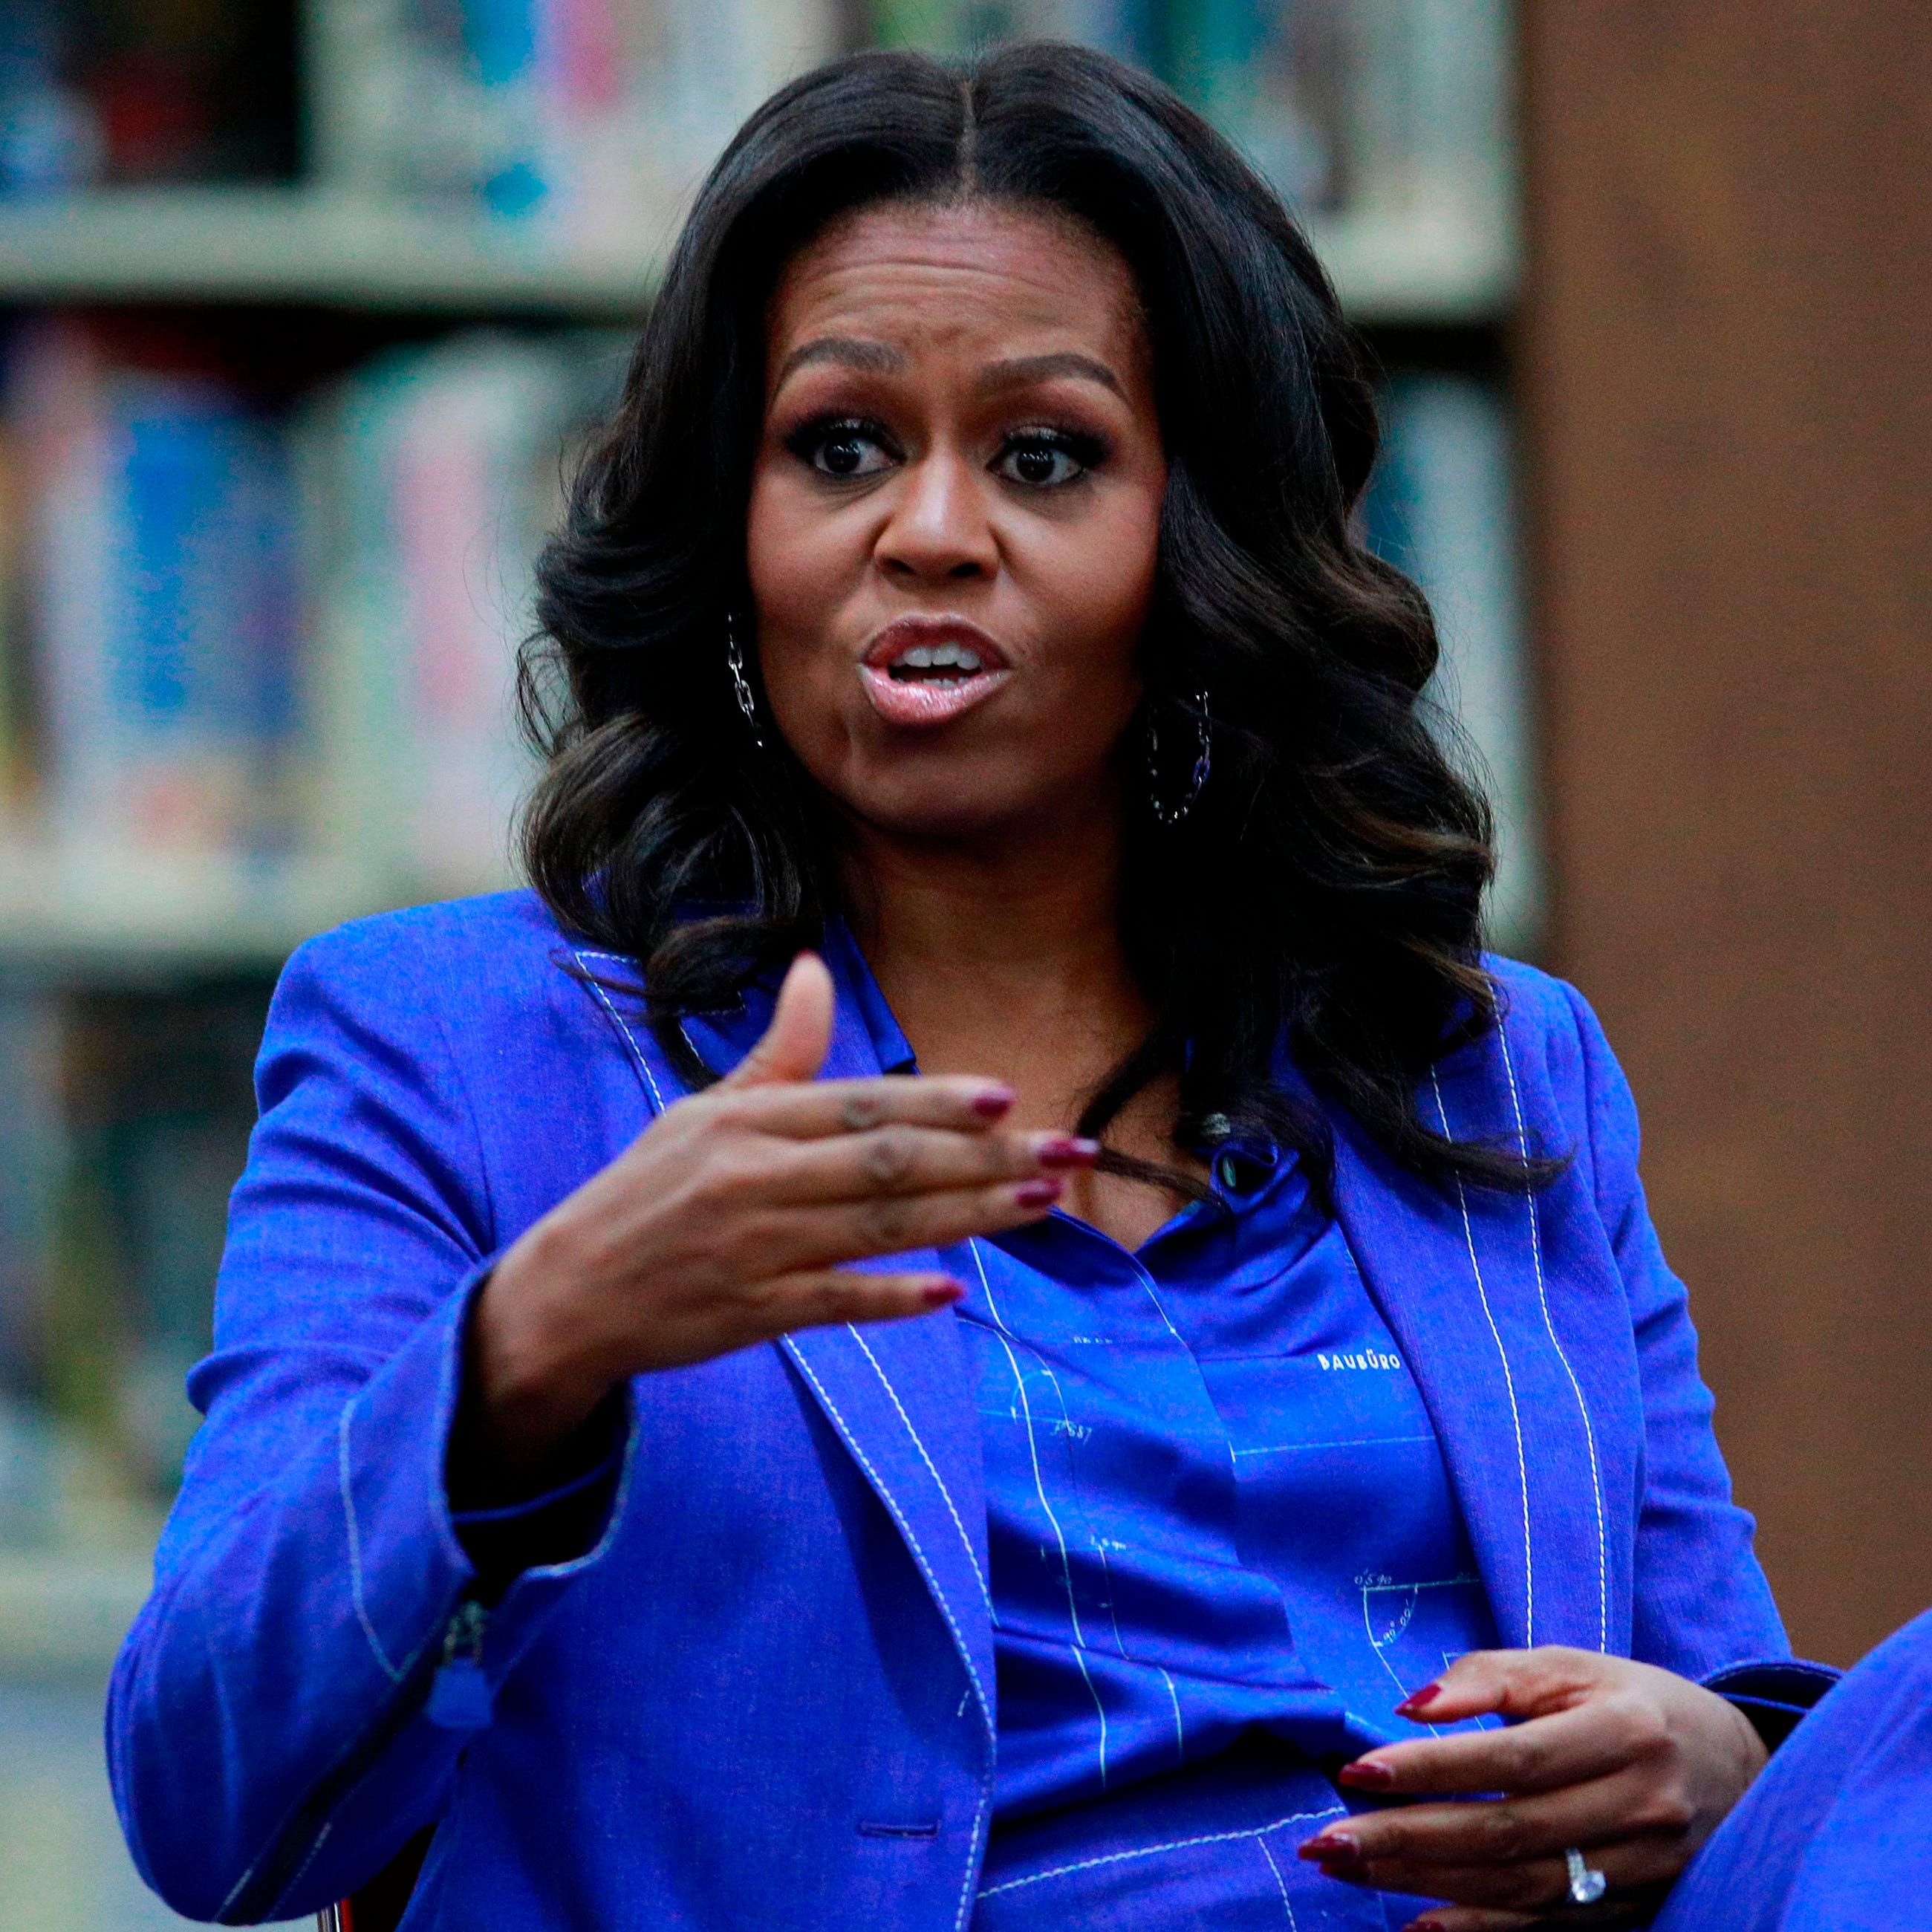 Michelle Obama says at this point, she's interested in a respectful challenger to President Trump than a flashy one.